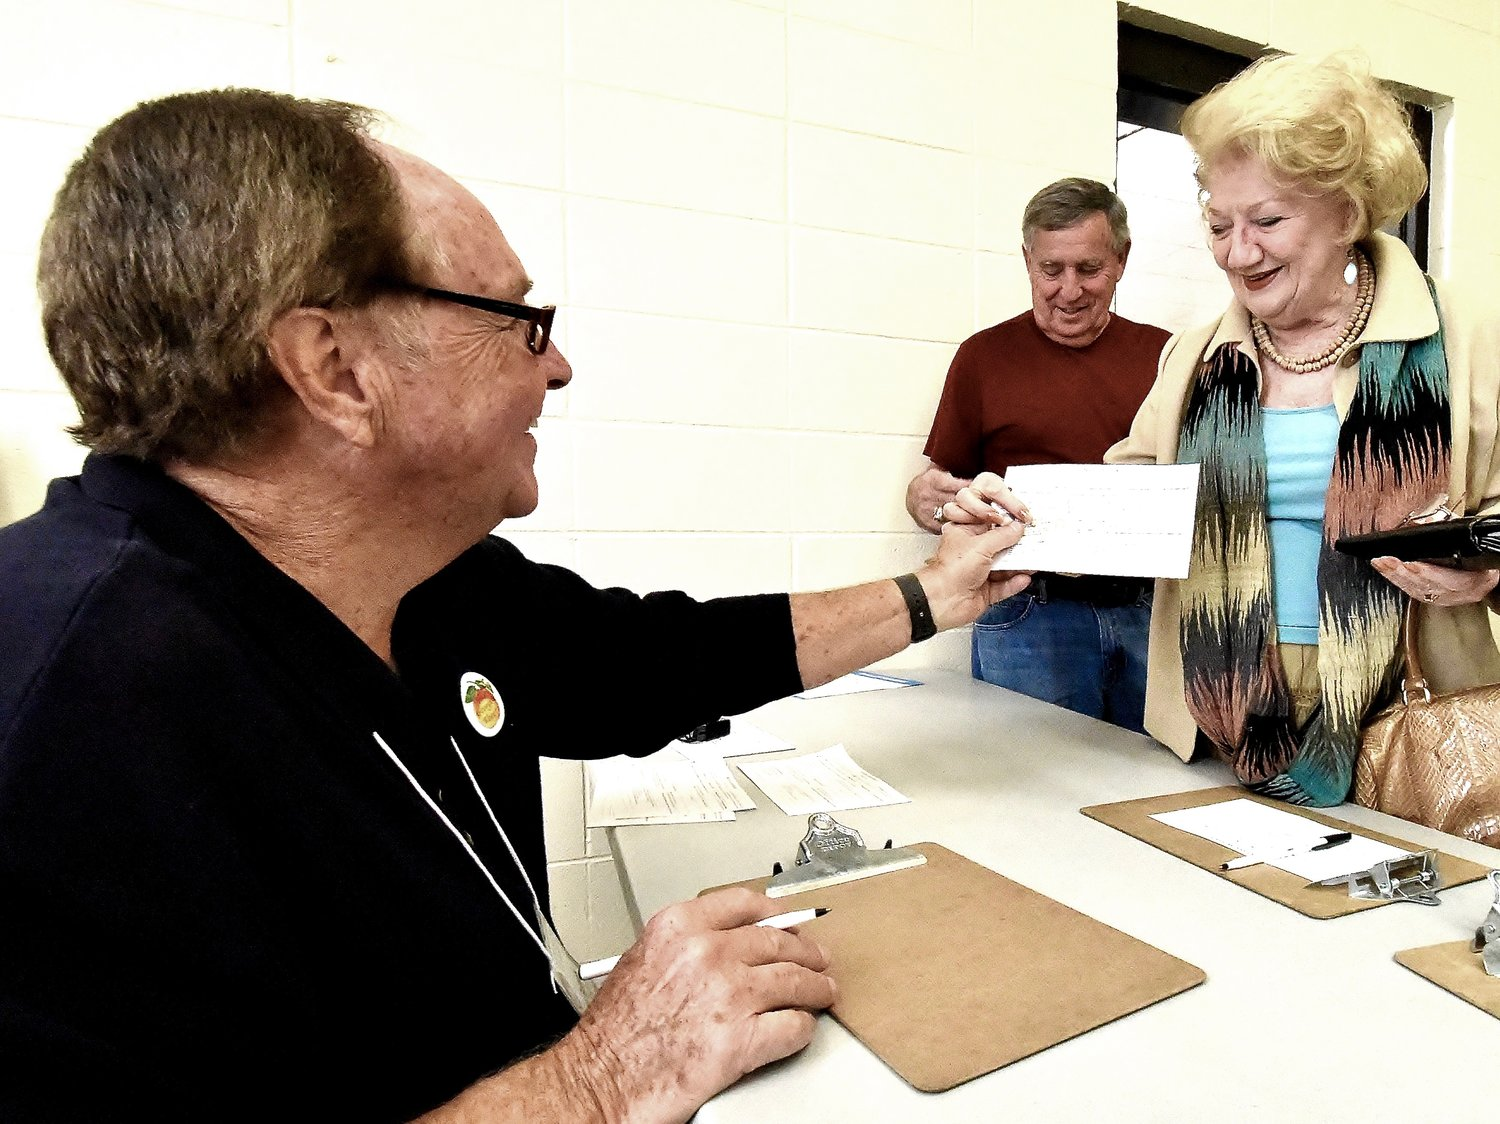 Poll worker Jerry Gravley hands Cartersville resident Mina Harper a voter registration card Tuesday at the Cartersville Civic Center.